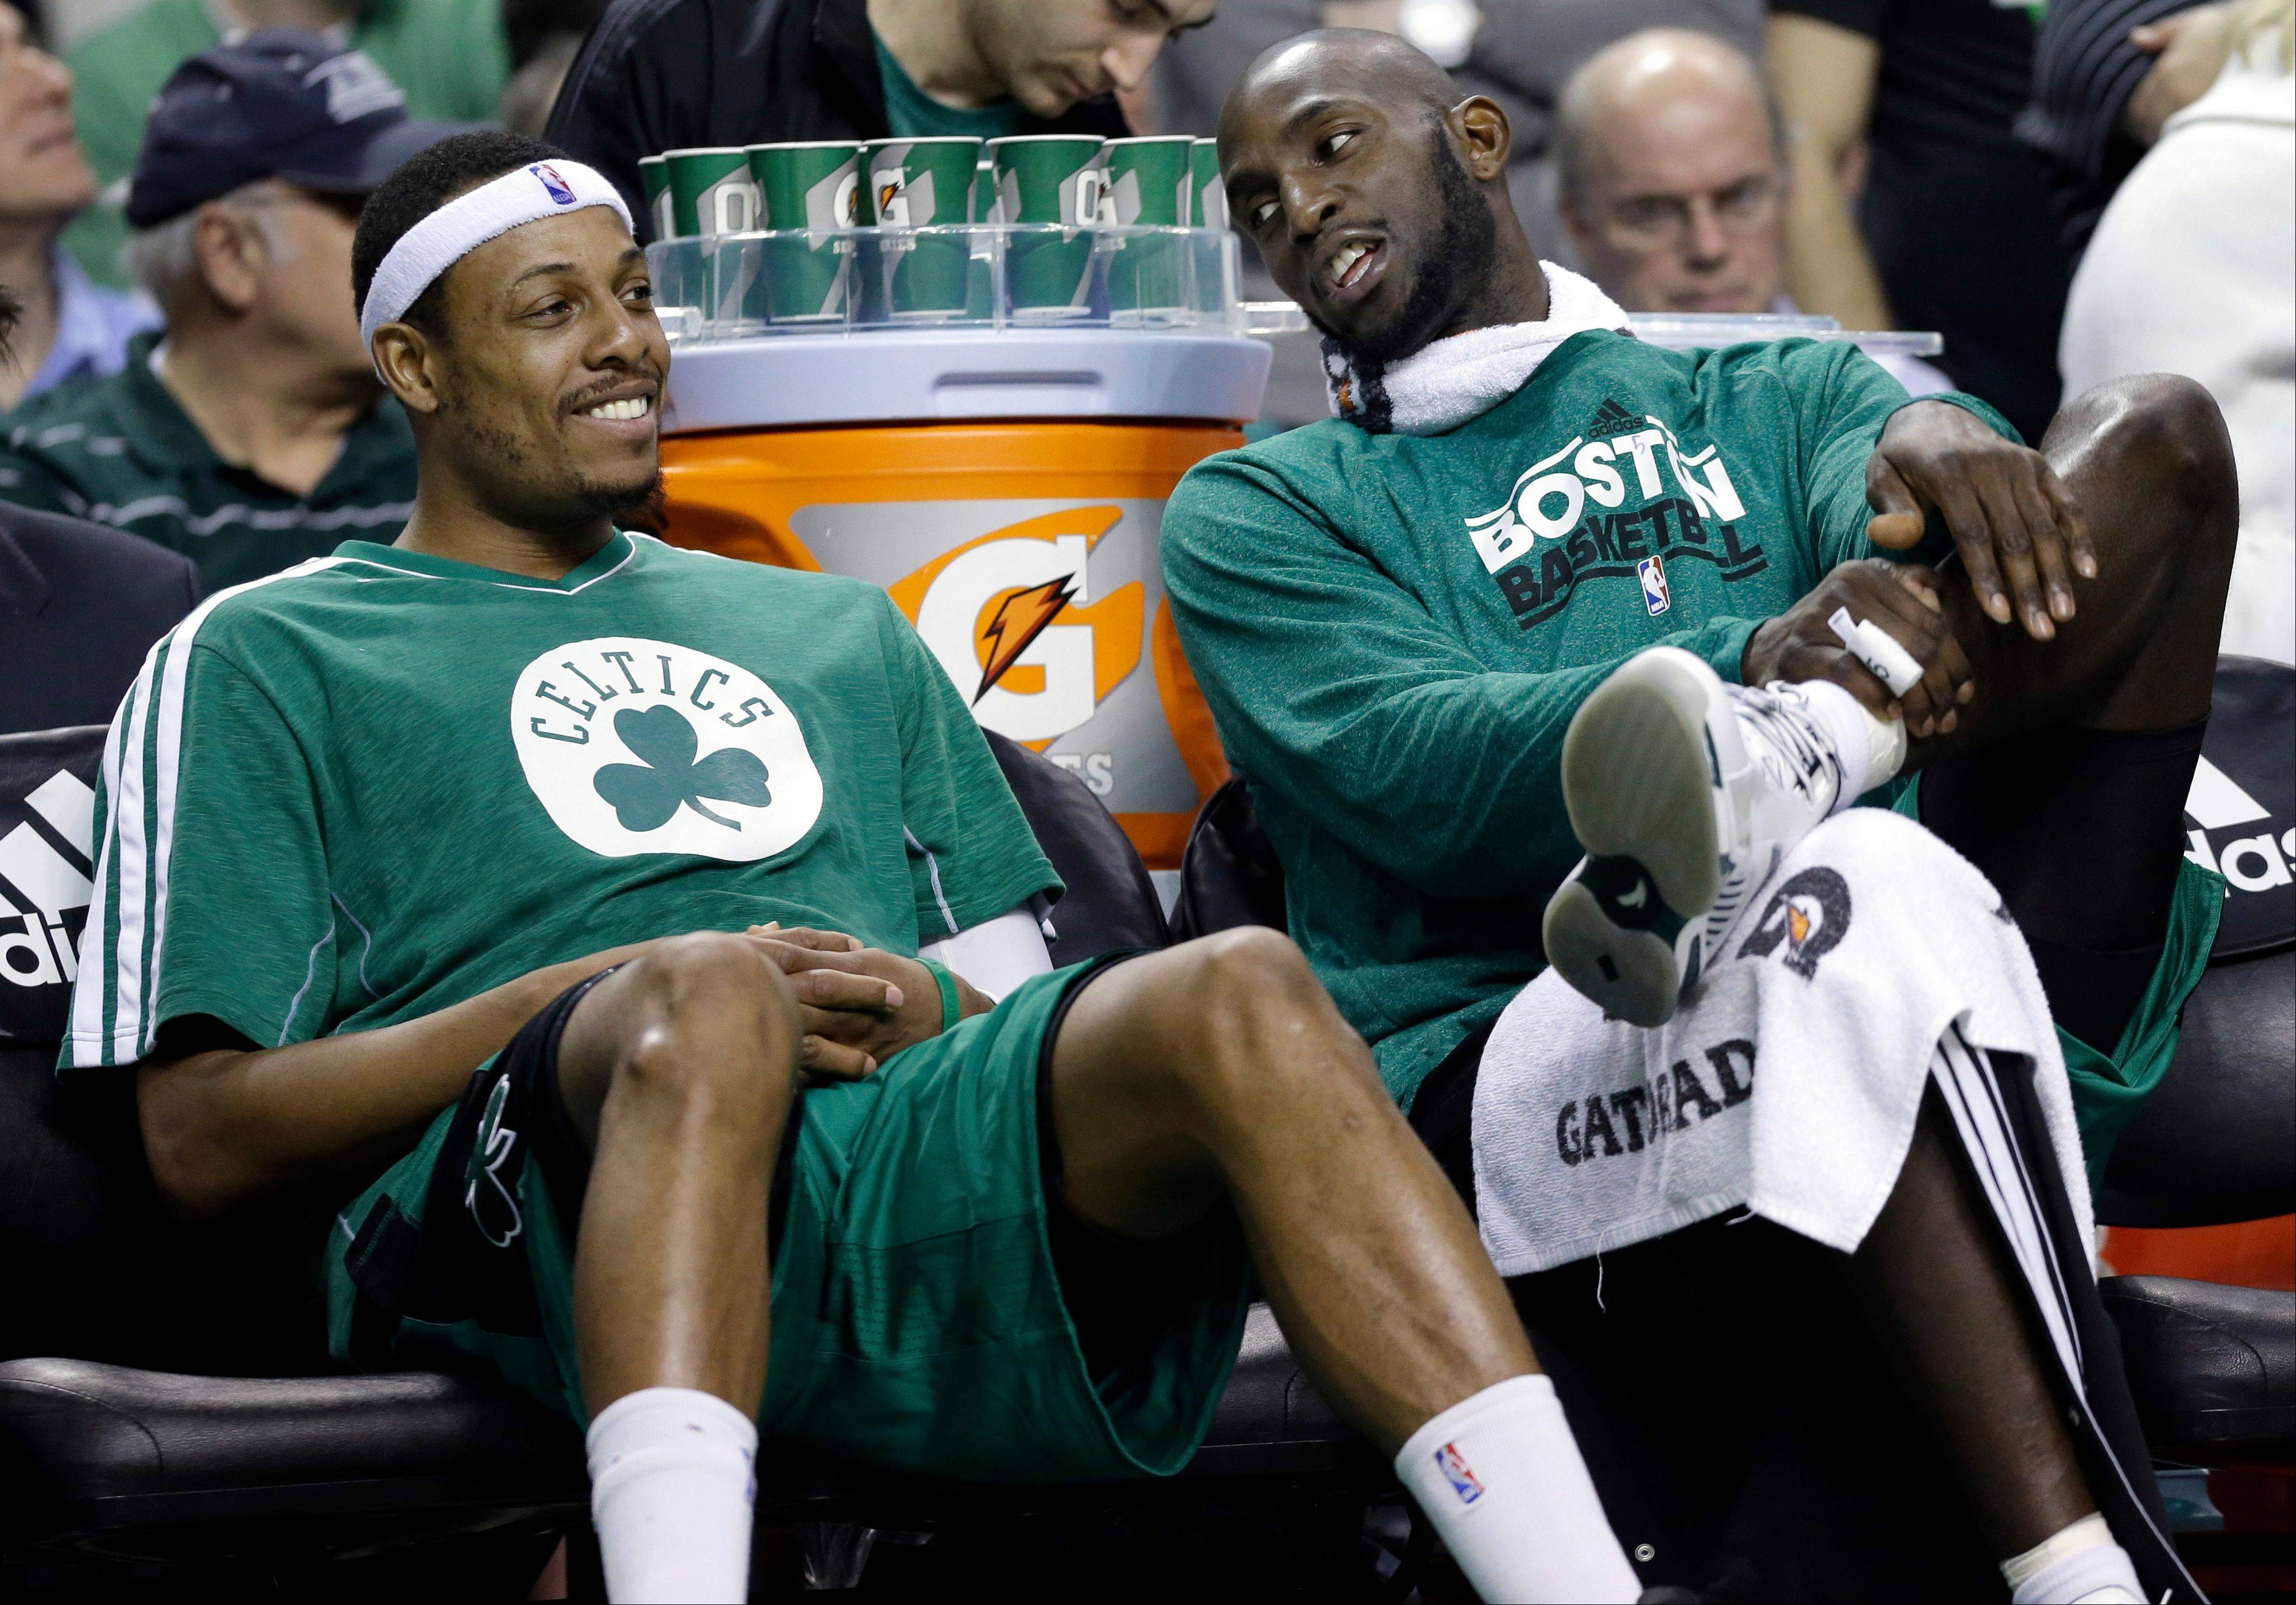 FILE - Boston Celtics center Kevin Garnett, right, chats with teammate Paul Pierce on the bench during the fourth quarter of an NBA basketball game against the Toronto Raptors in Boston, in this March 13, 2013 file photo. The Brooklyn Nets will acquire Paul Pierce and Kevin Garnett from the Boston Celtics in a deal that was still developing as the NBA draft ended, according to a person with knowledge of the details. The trade can't be completed until July 10, after next season's salary cap is set, so pieces were still being discussed early Friday June 28, 2013.